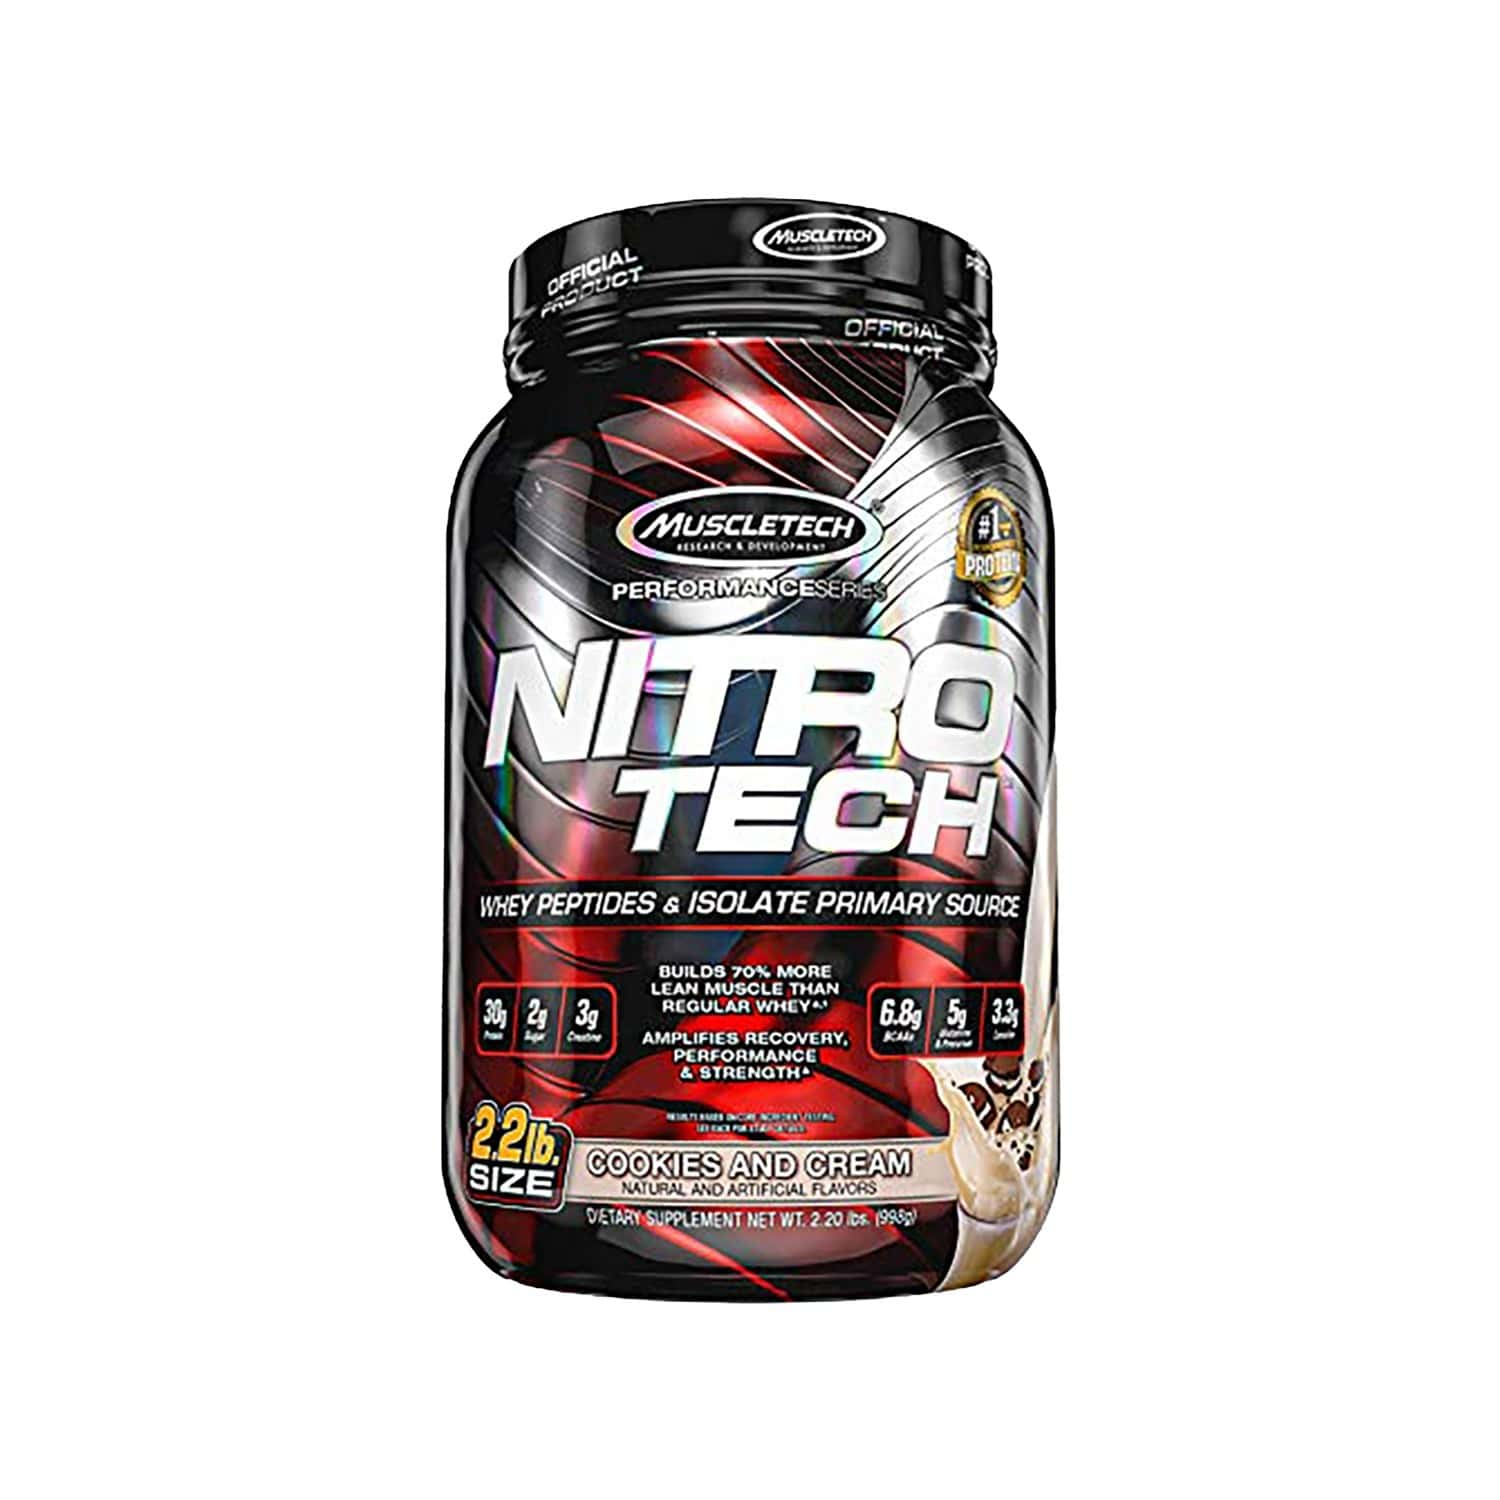 Muscletech Cookies And Cream Performance Series Nitrotech Whey Protein Peptides & Isolate - 907 Gm